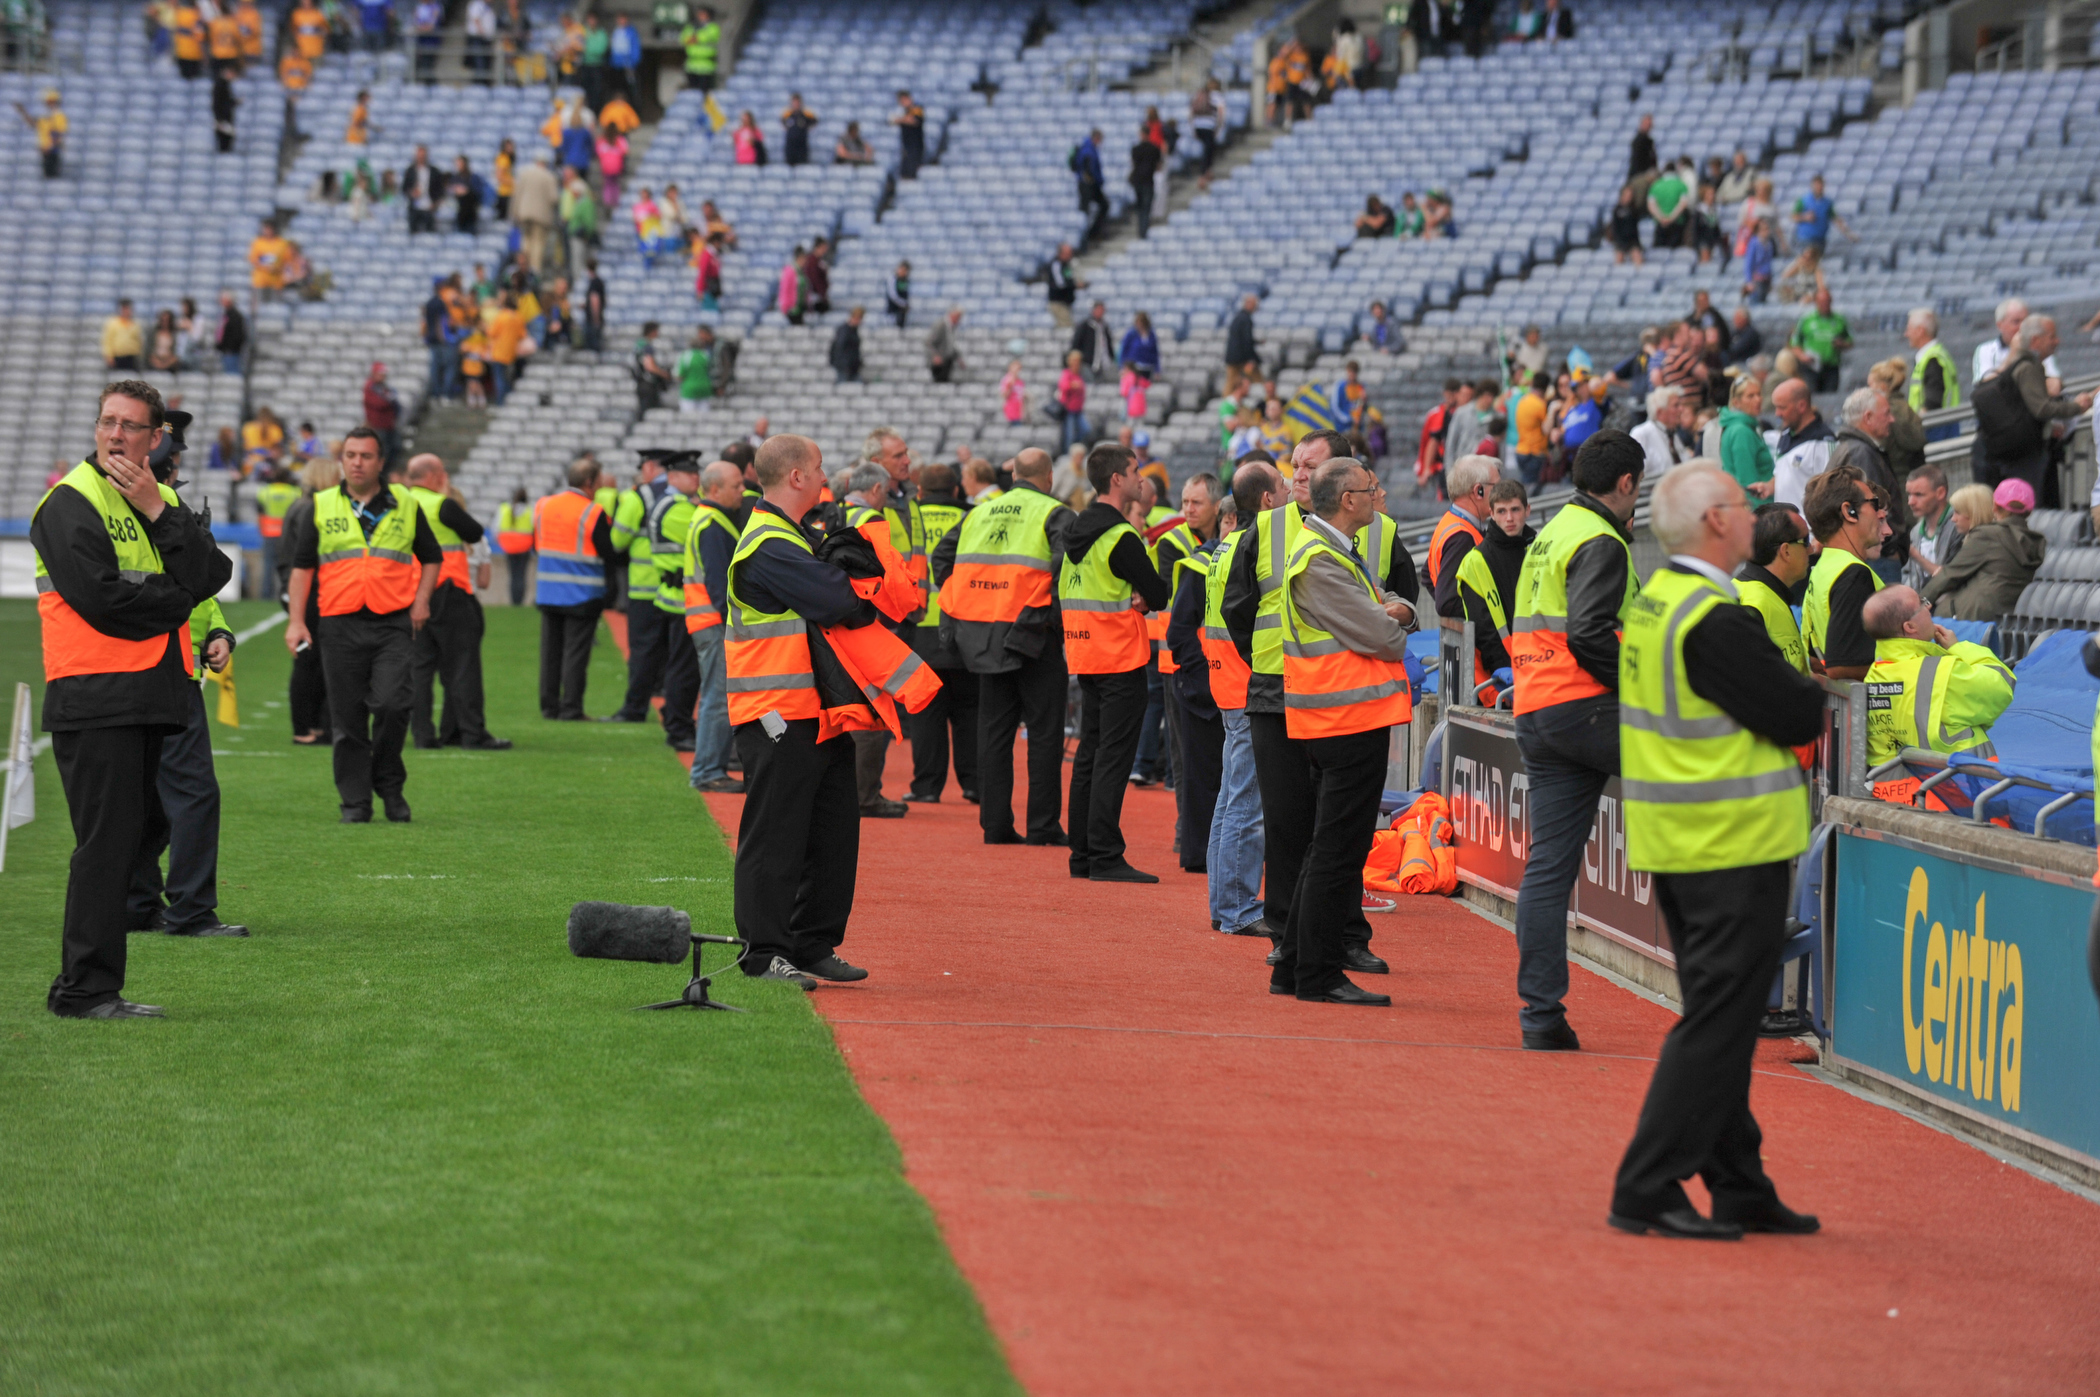 18th August, 2013, Croke Park Dublin. The 2013 All-Ireland Senior Hurling Semi-final between Limerick and Clare. Pictured are stewards in the stadium. (Photo: Barry Cronin)